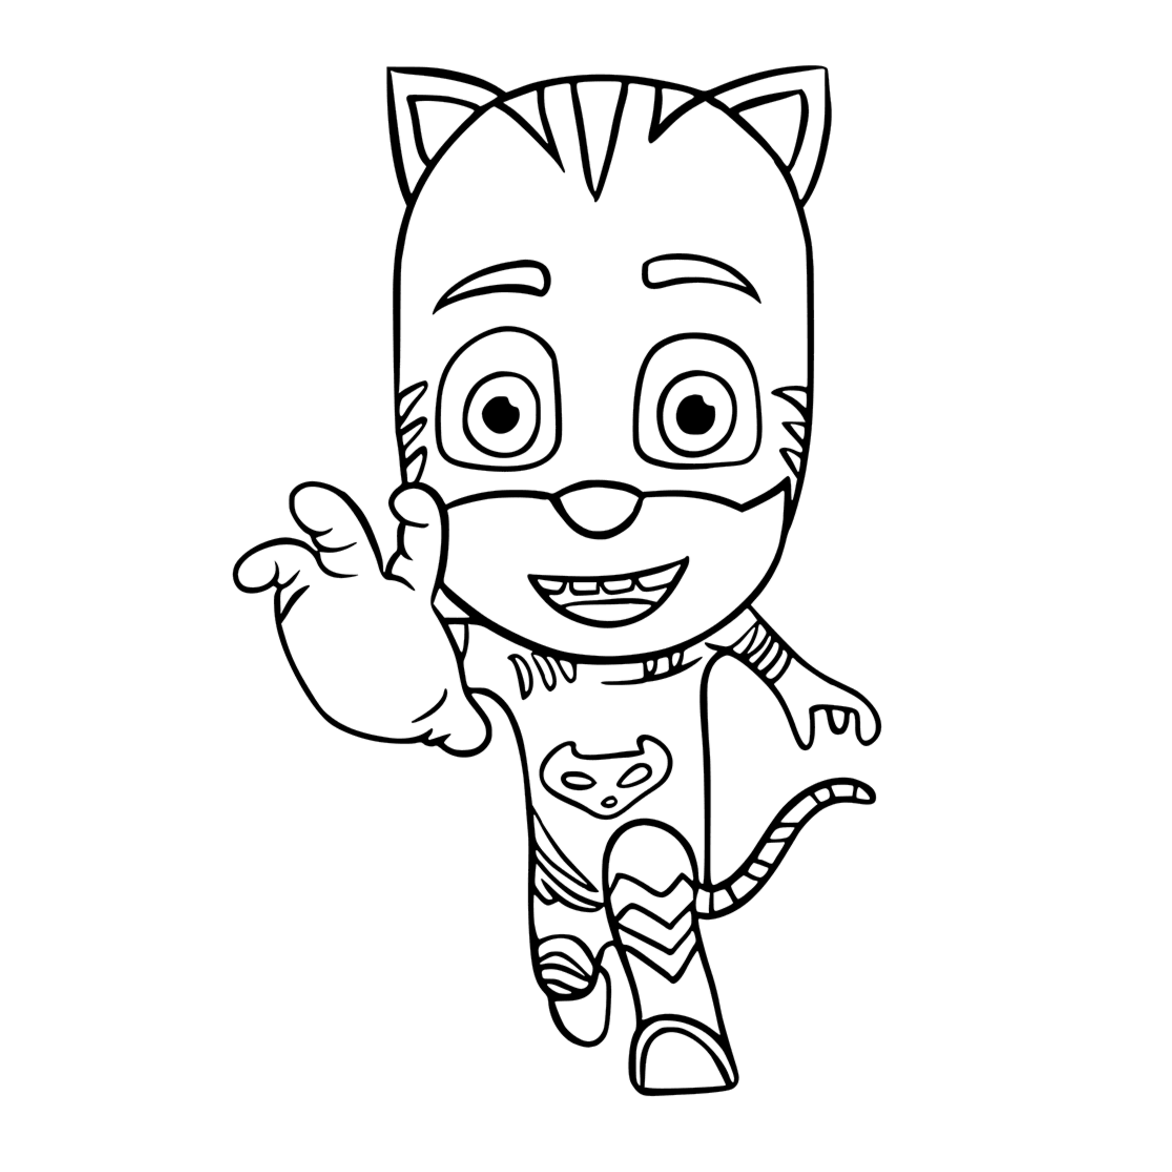 1172x1172 Pj Masks Coloring Pages To Download And Print For Free